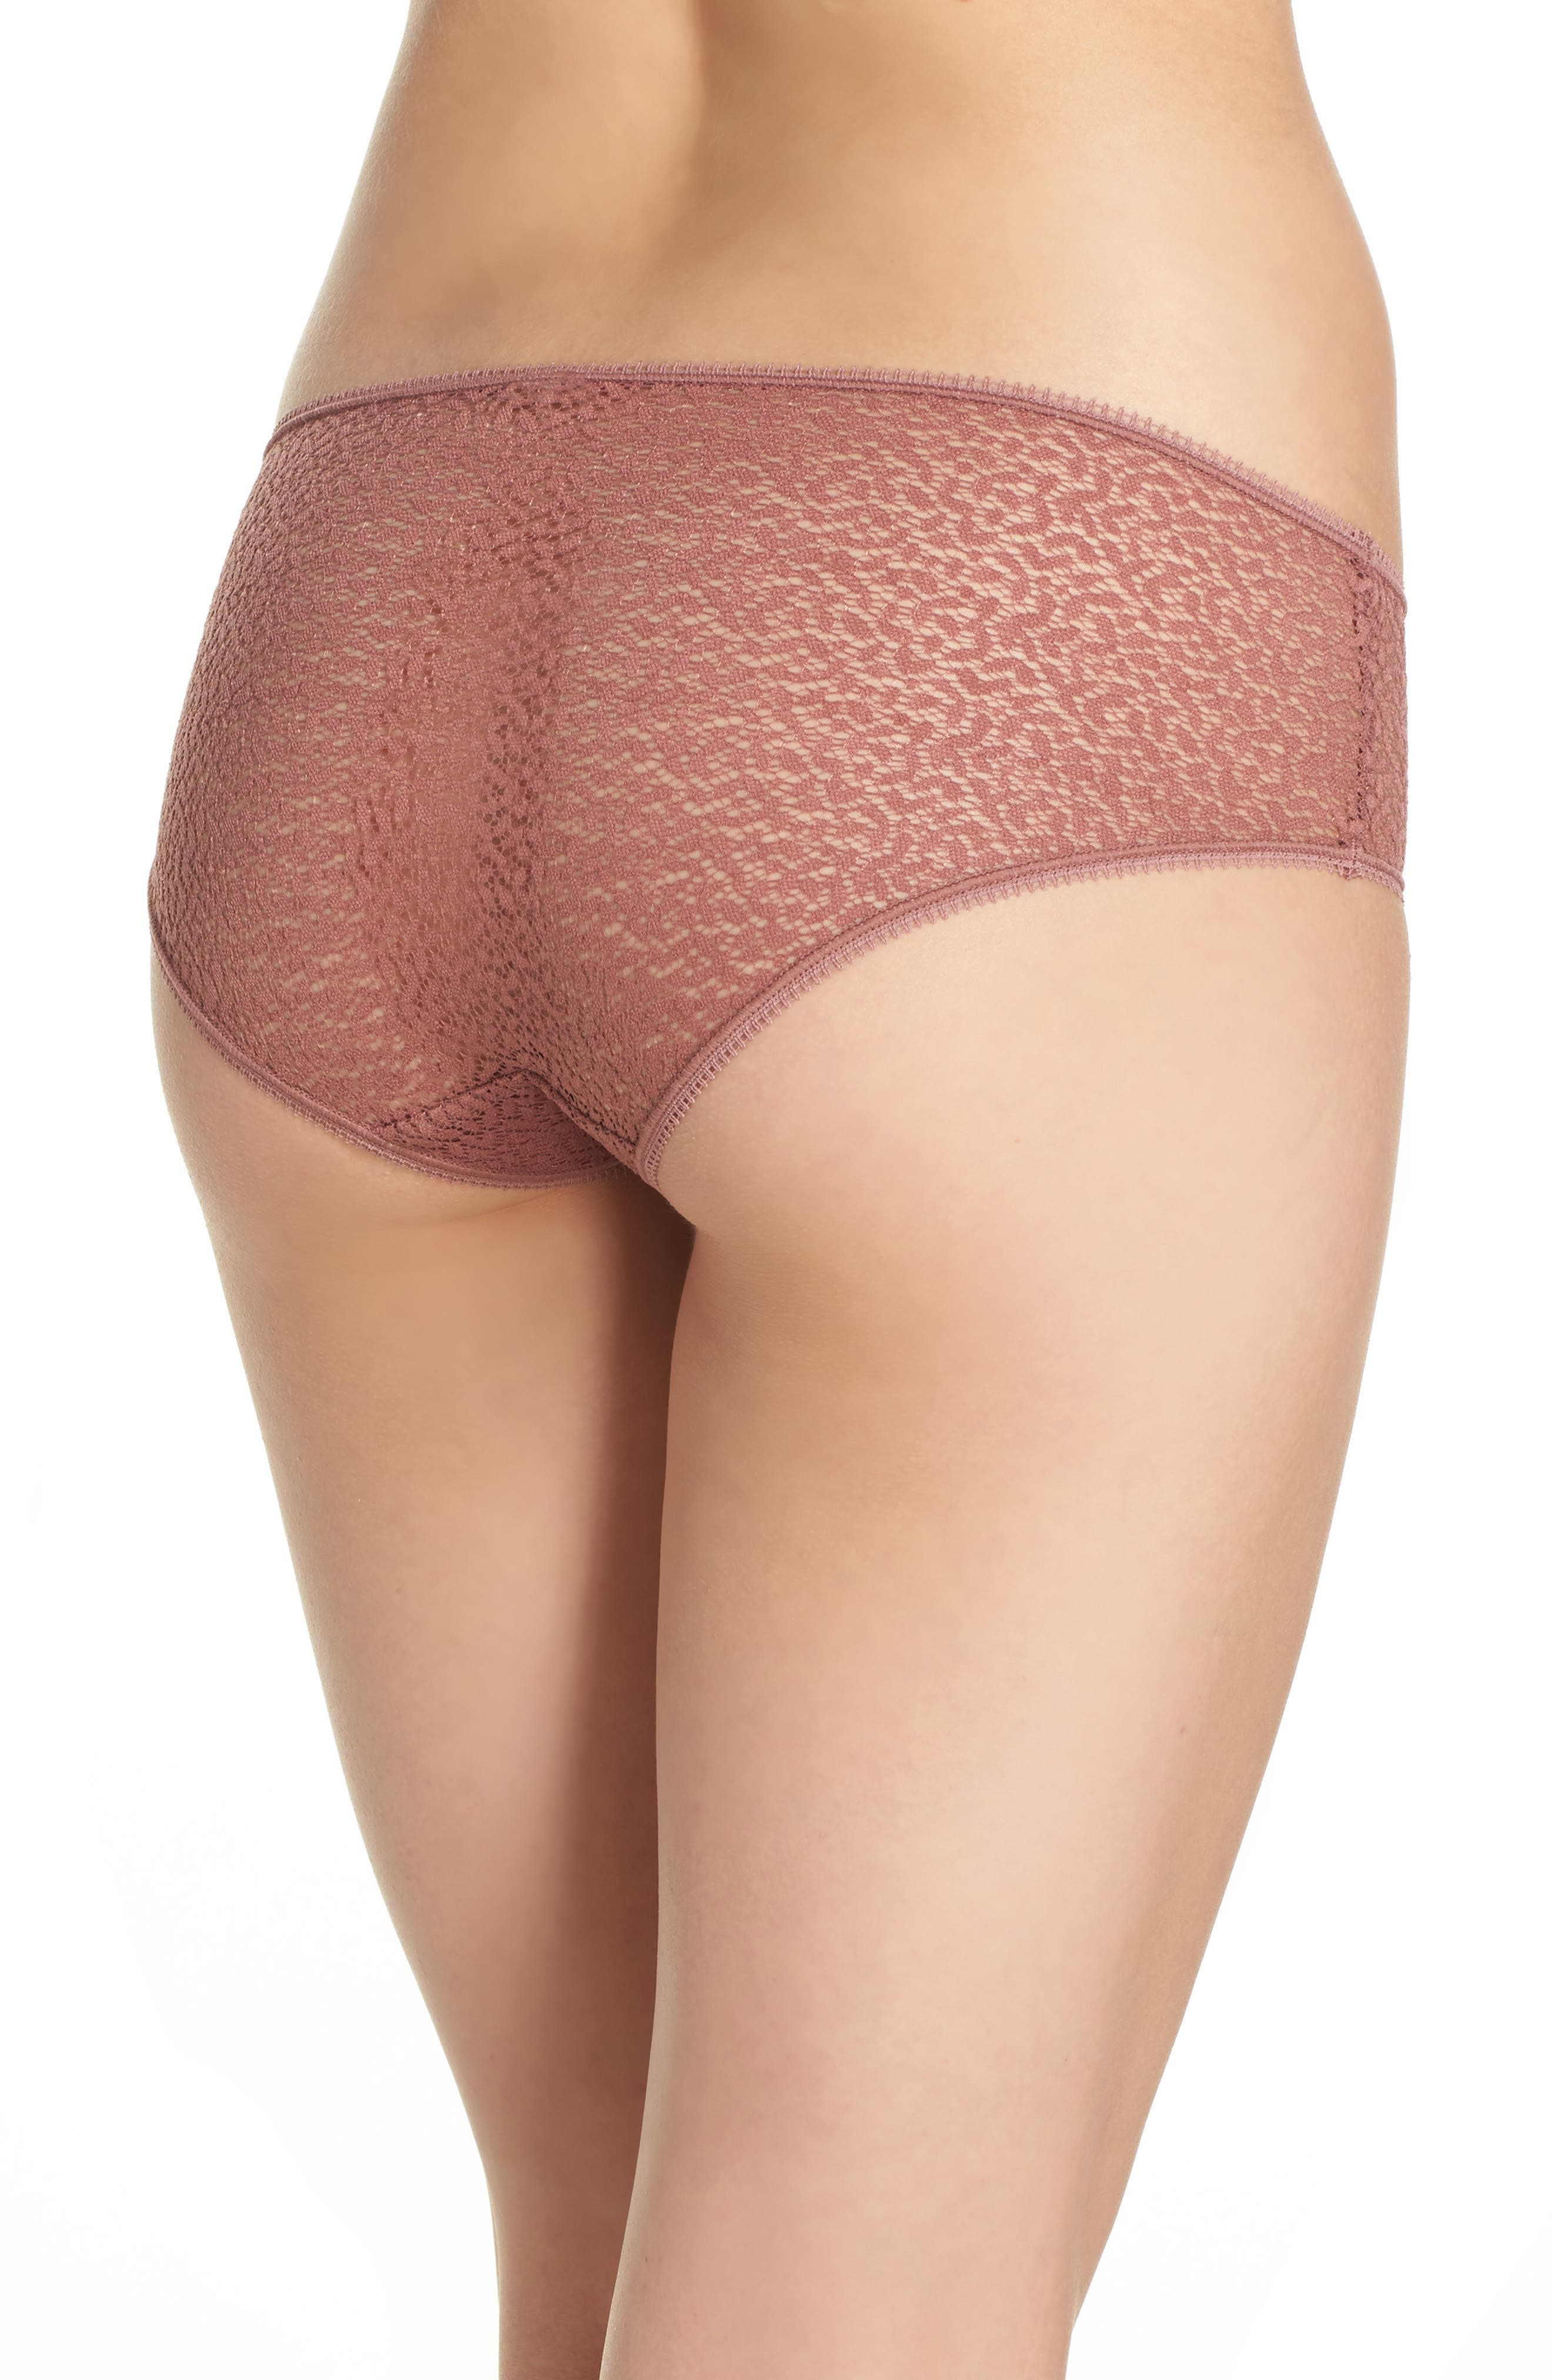 Modern Lace Hipster Panties,                             Alternate thumbnail 2, color,                             Rosewood 7Nq